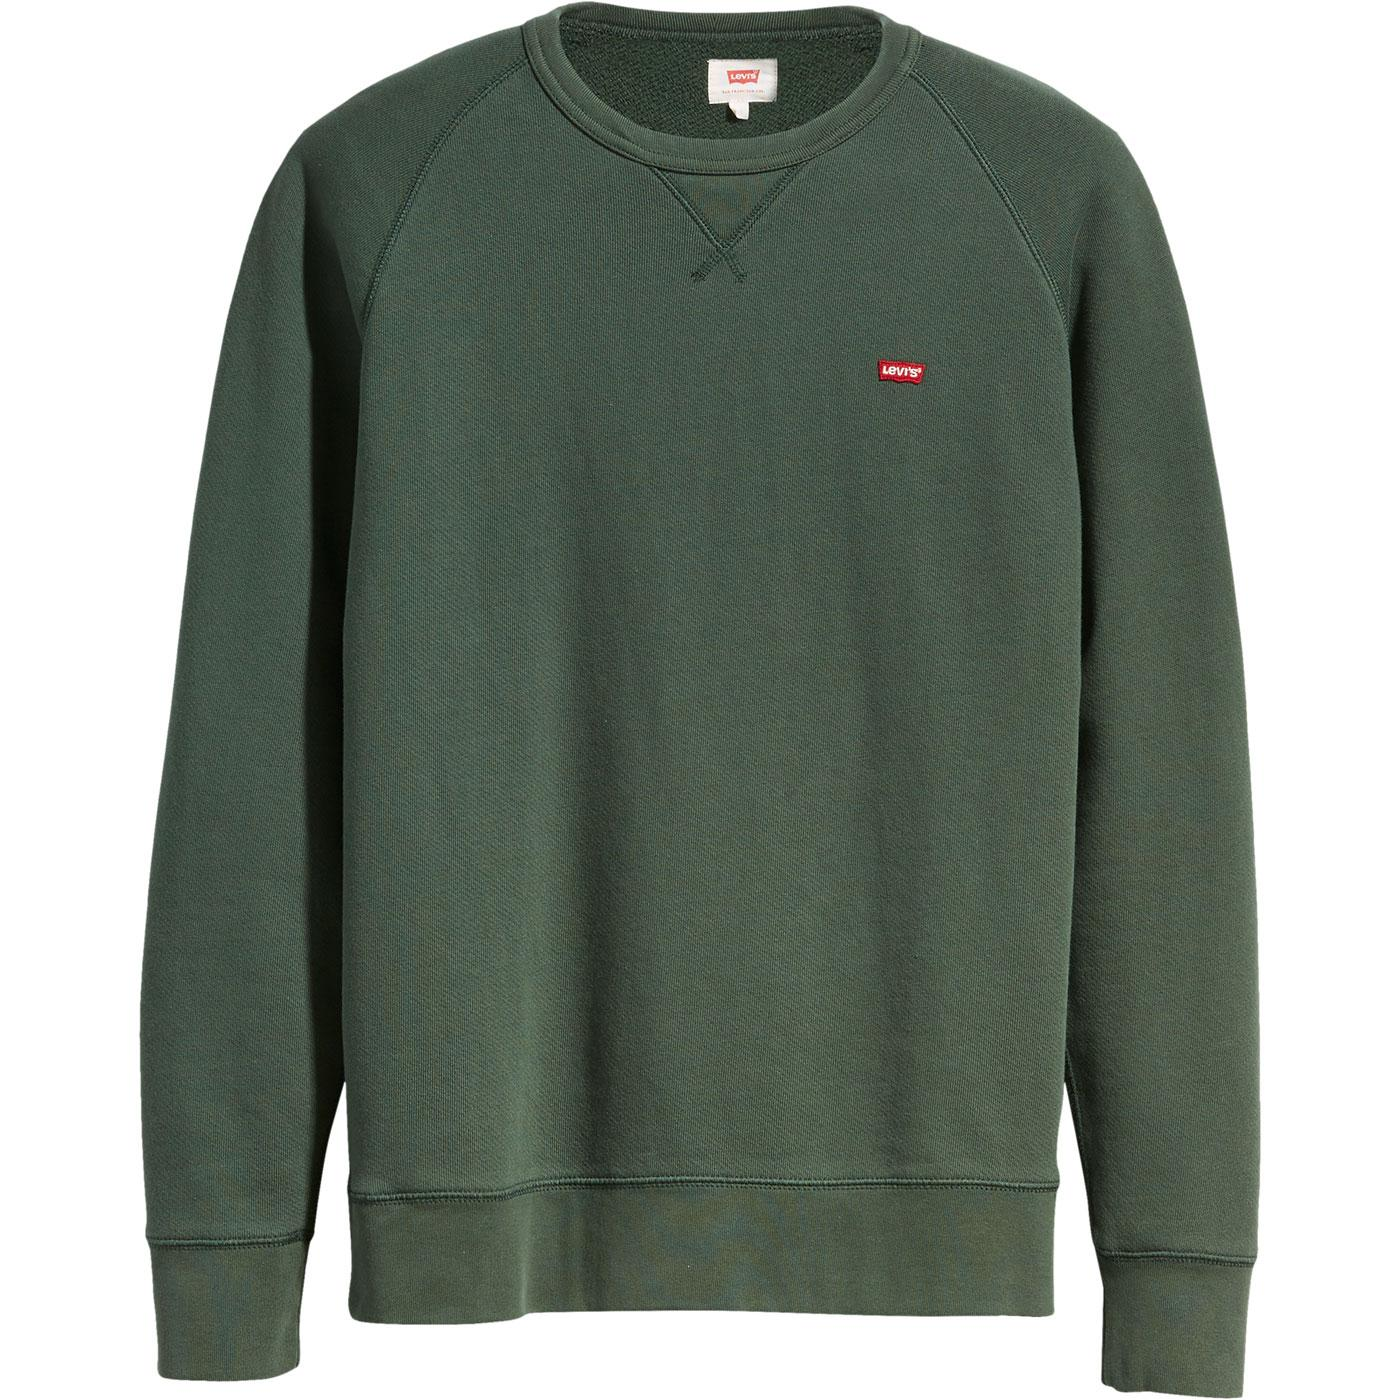 LEVI'S Original Icon Crew Sweatshirt PYTHON GREEN